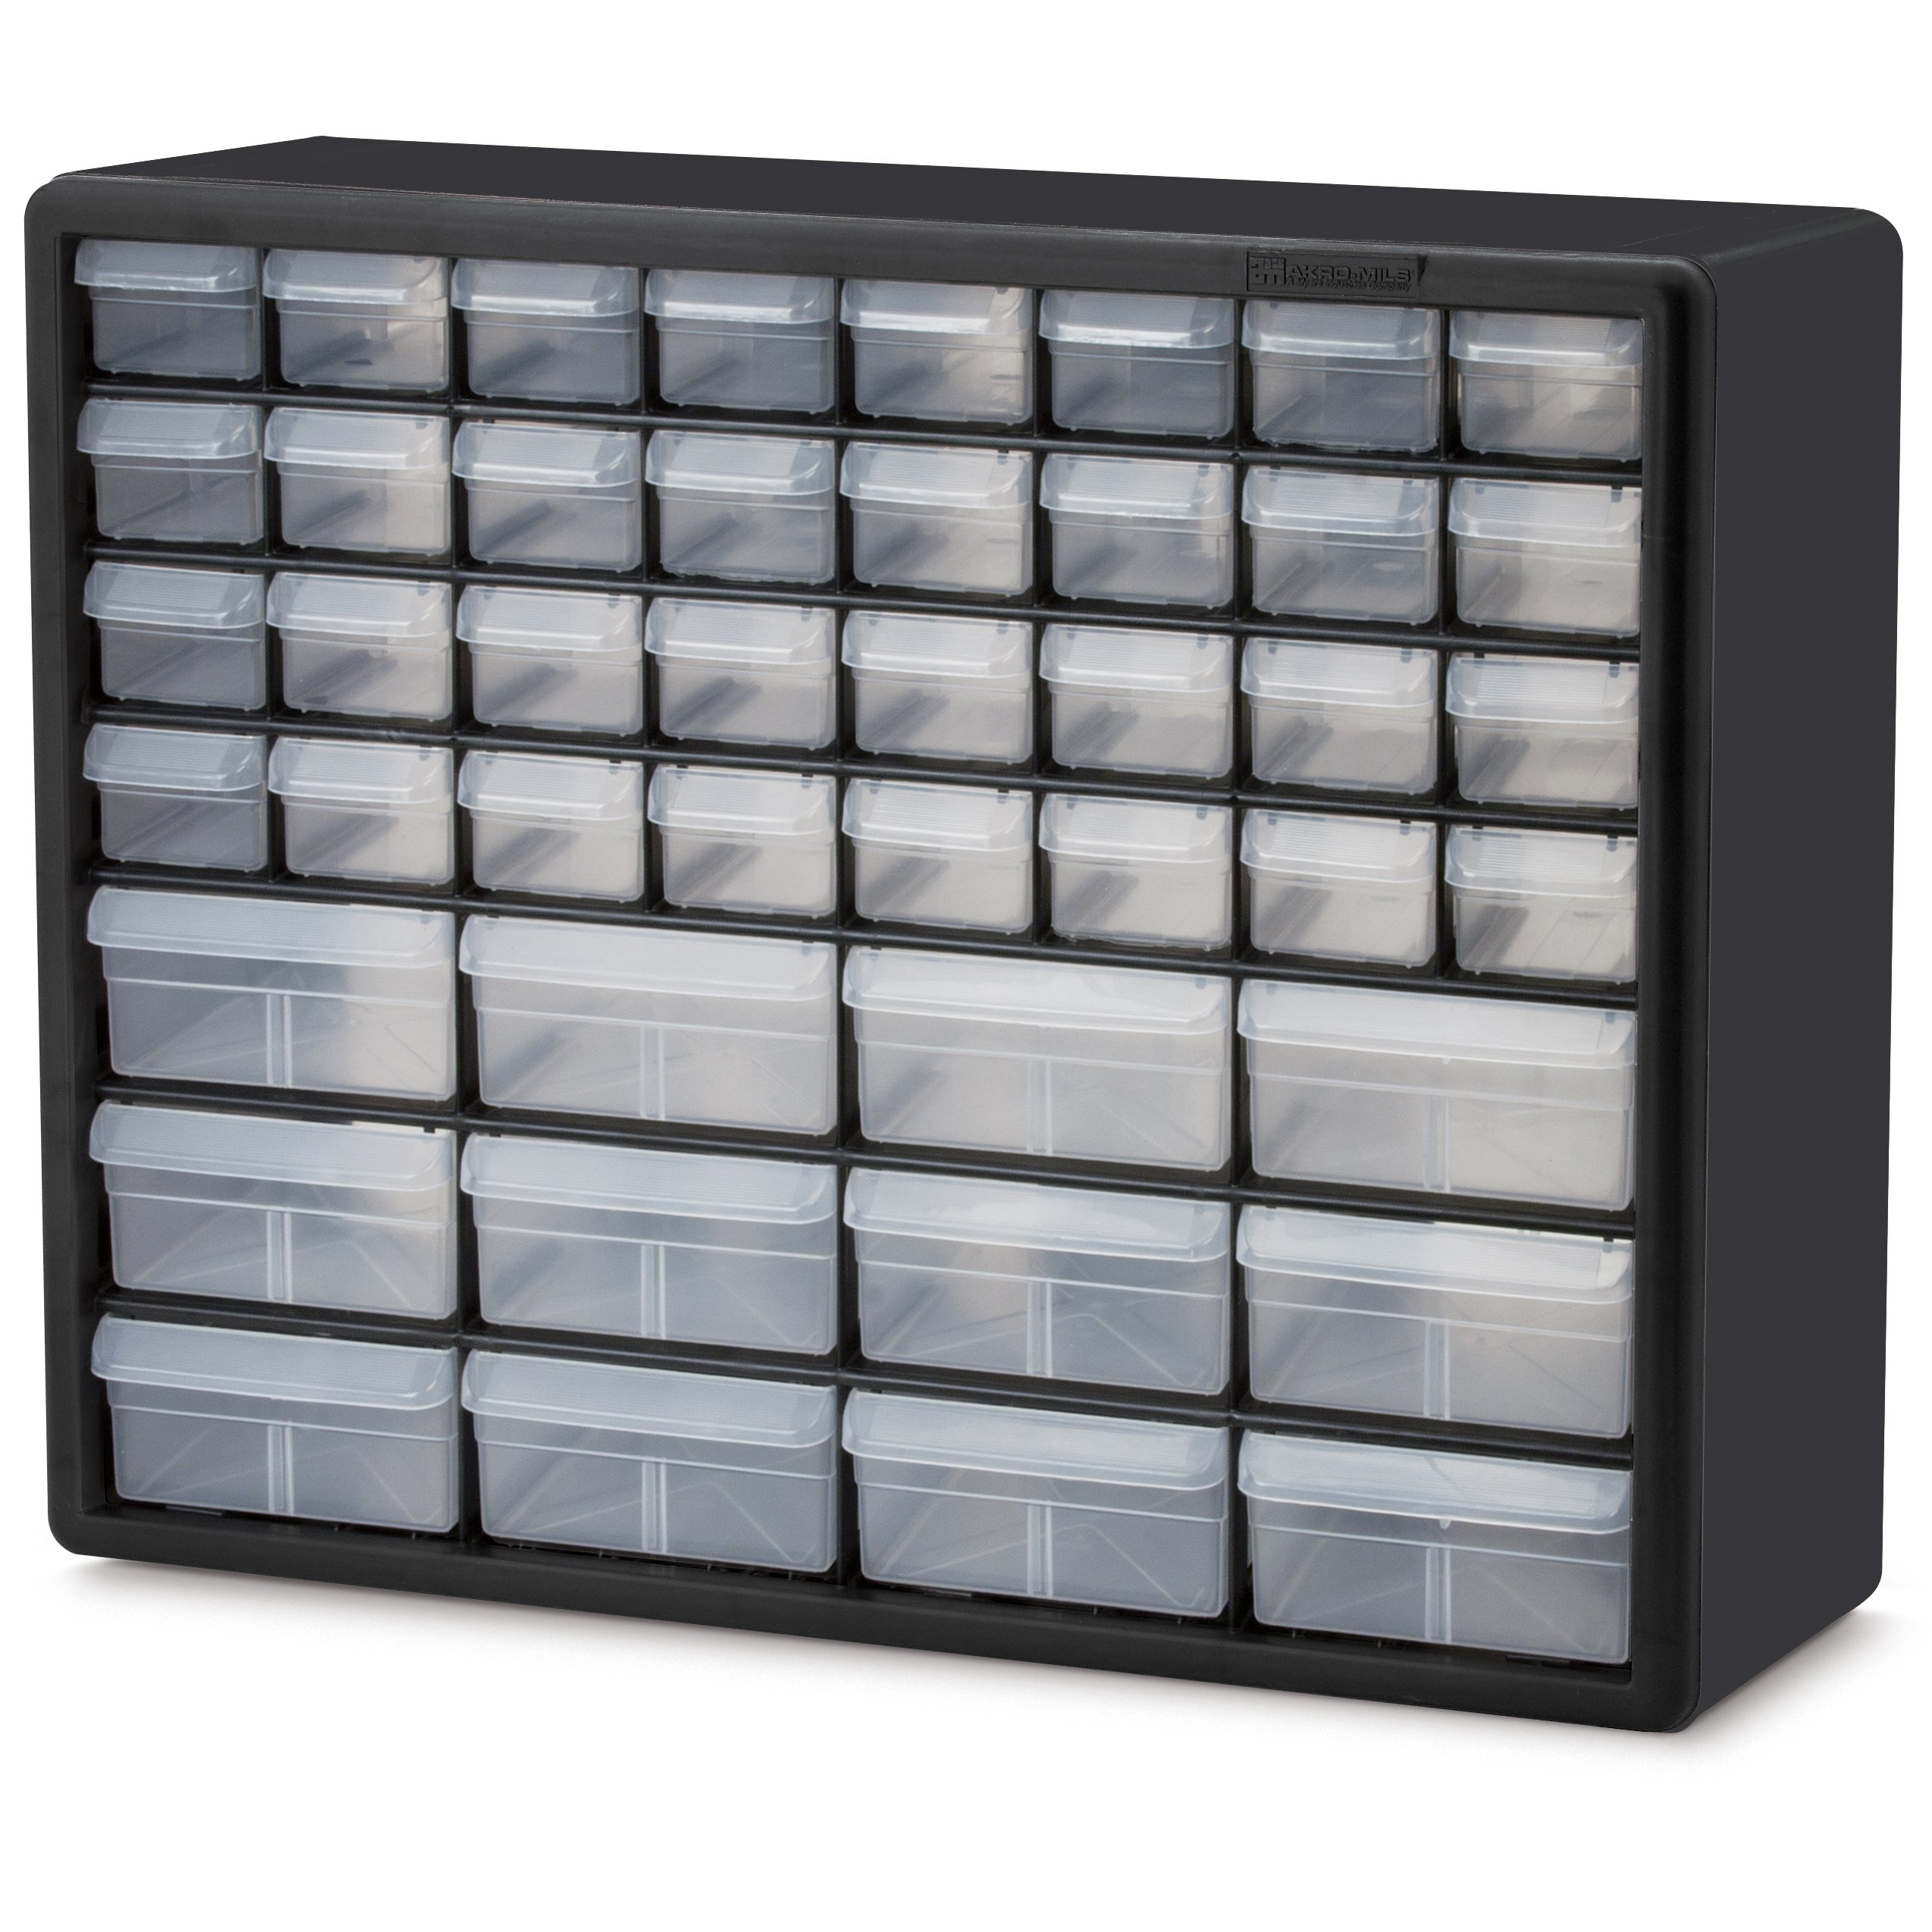 New Storage Cabinet Organizer Box 44 Drawer Bins For Small Parts Hardware  Crafts